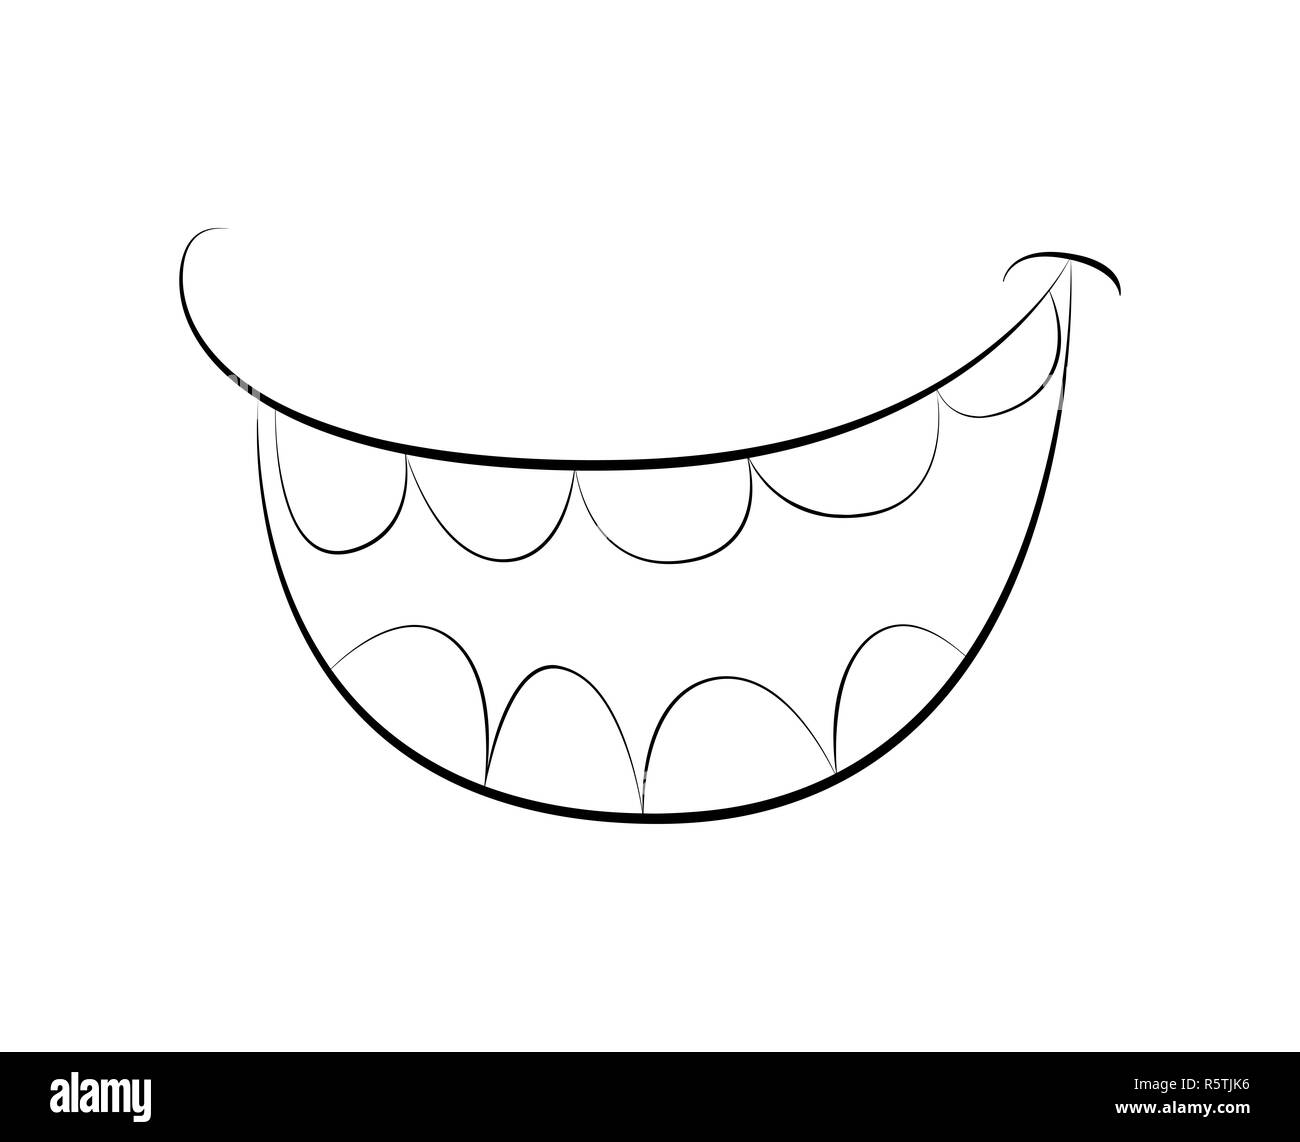 cartoon smile mouth lips with teeth vector silhouette outline illustration isolated on white background R5TJK6 cartoon open mouth black and white stock photos & images alamy